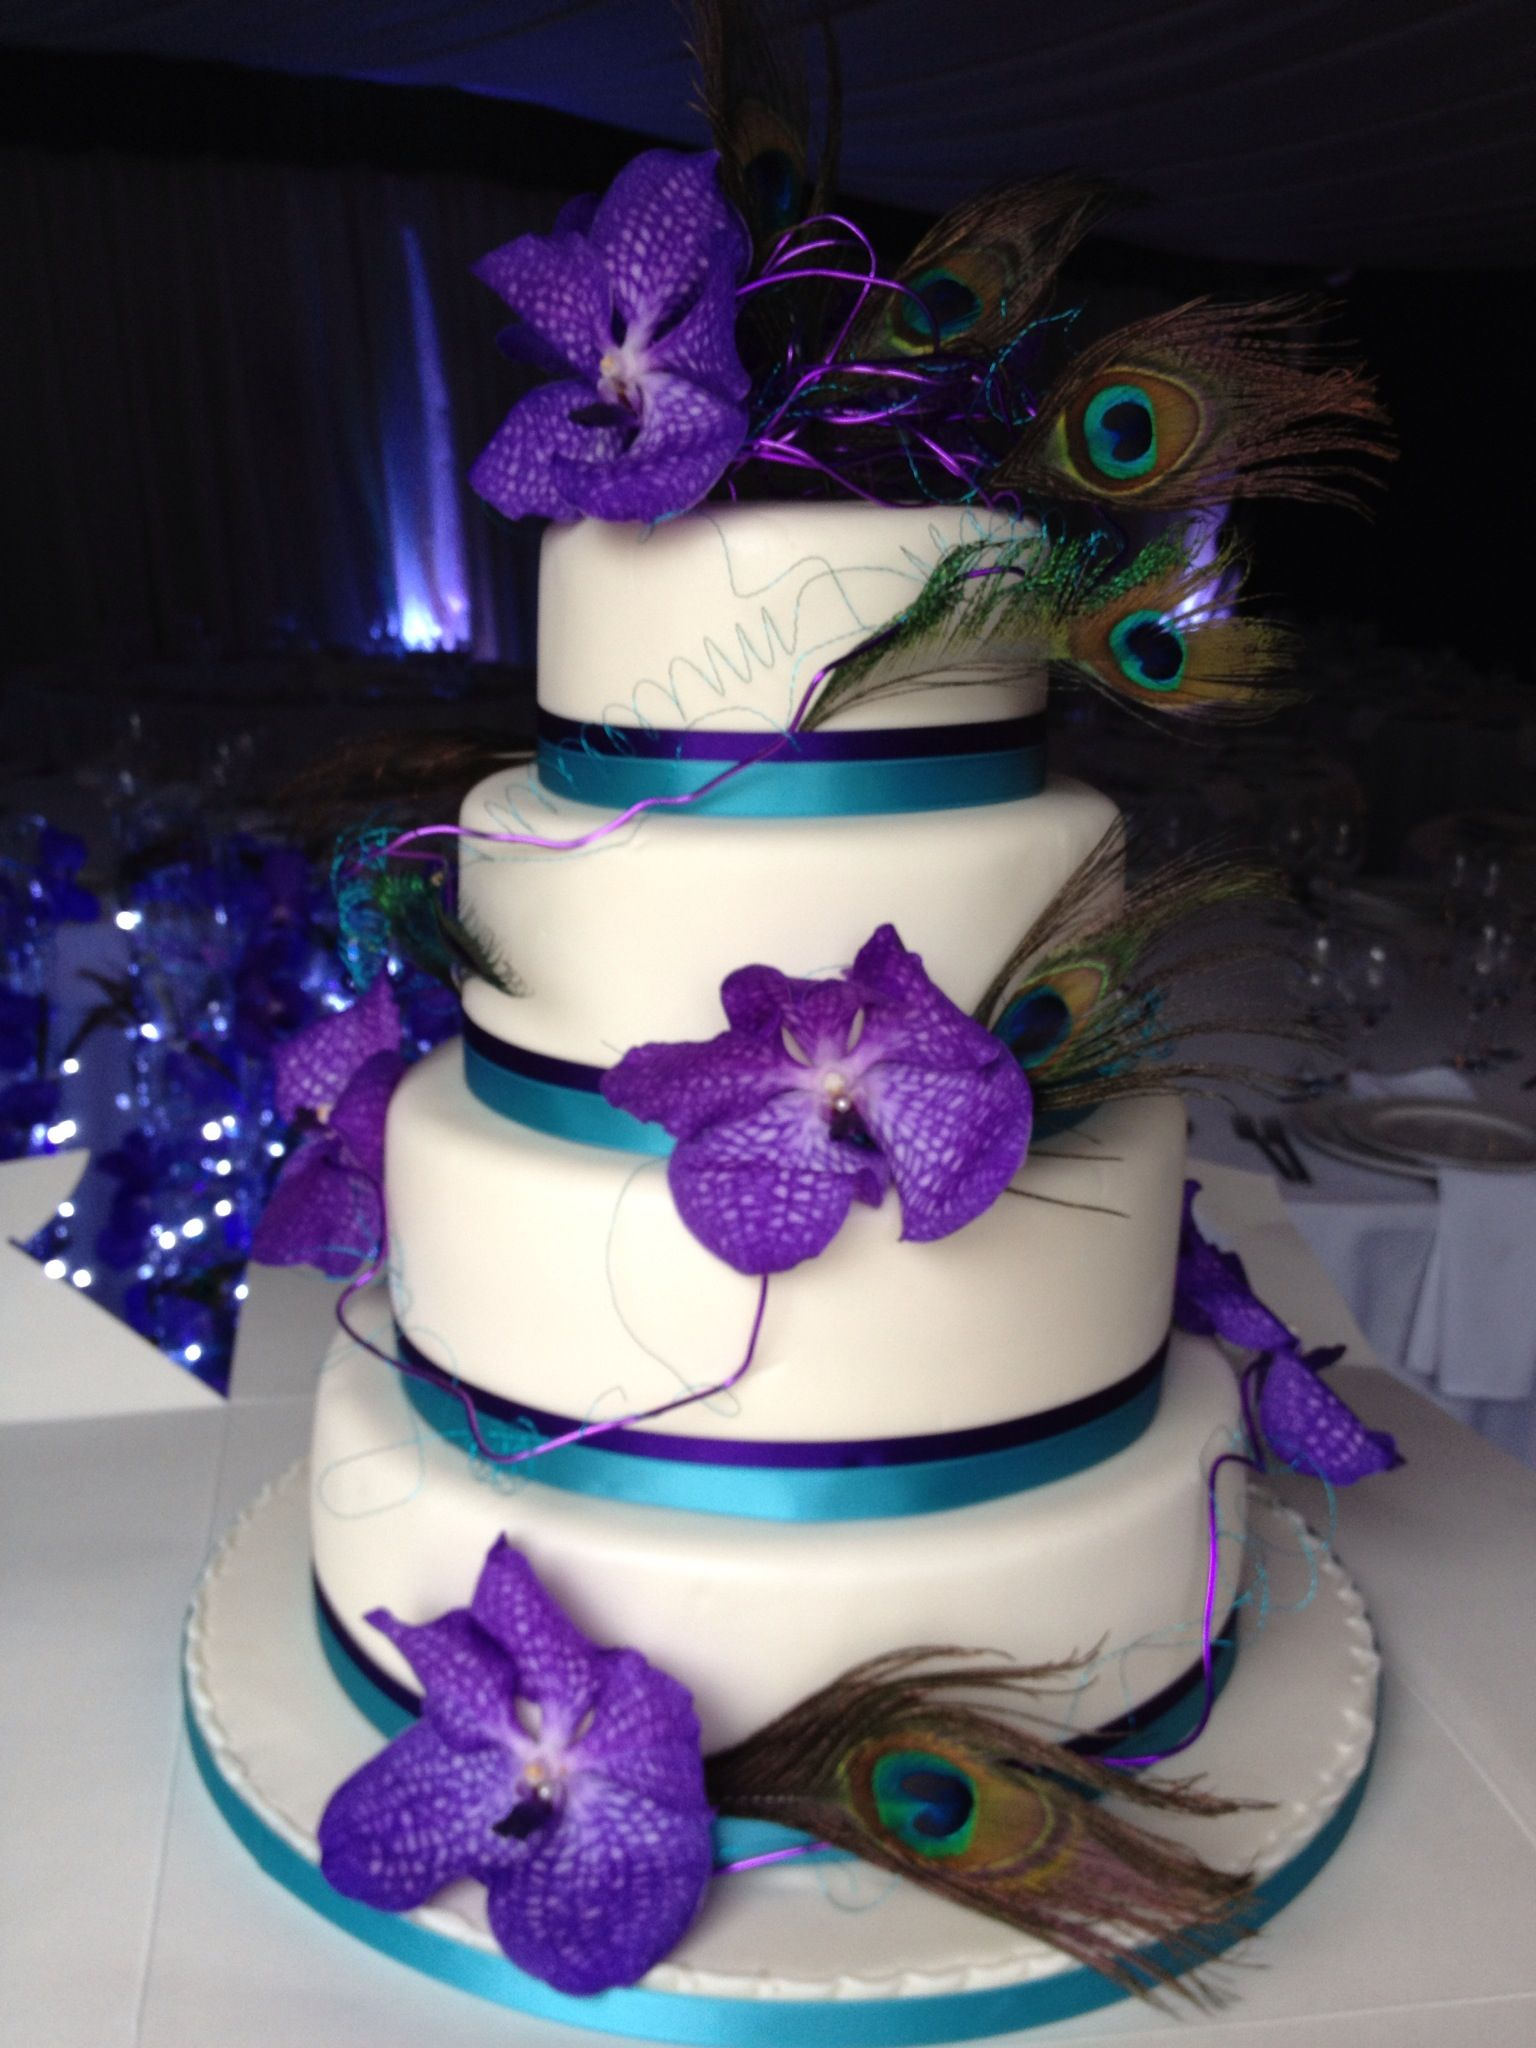 Turquoise & Purple Cake without the peacock feathers and only 2